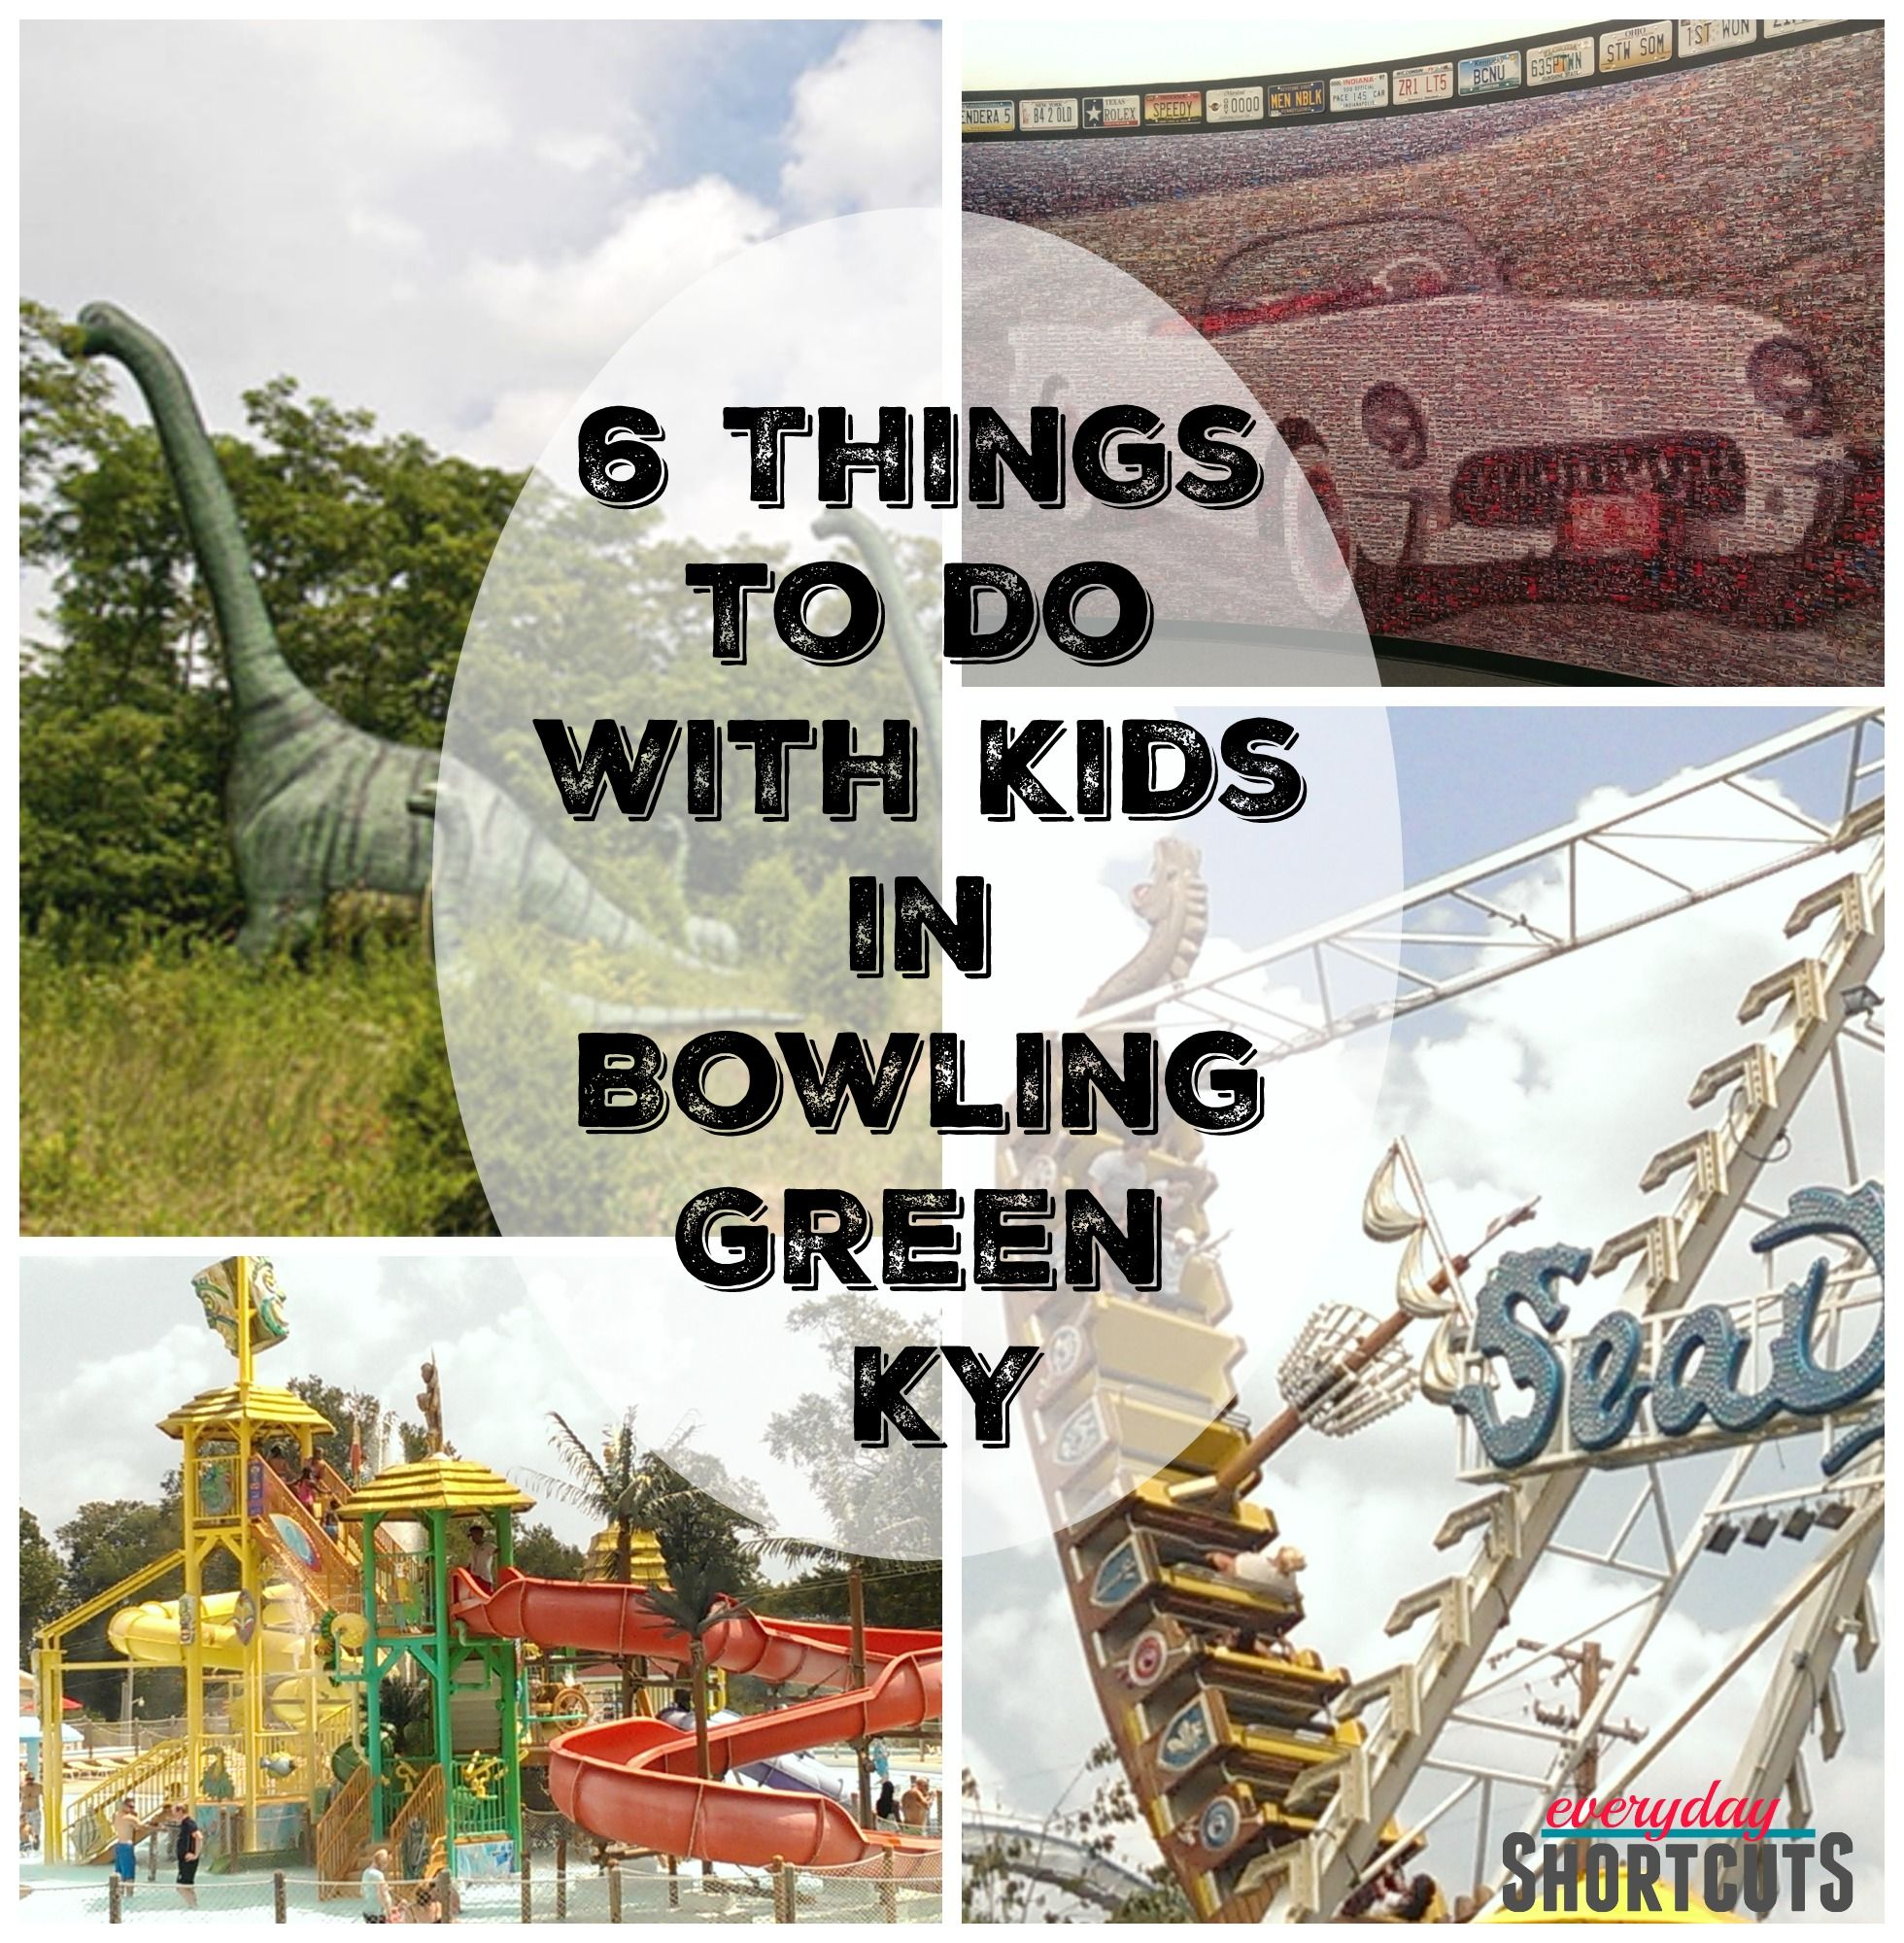 6 Things to do with Kids in Bowling Green KY  Nashville